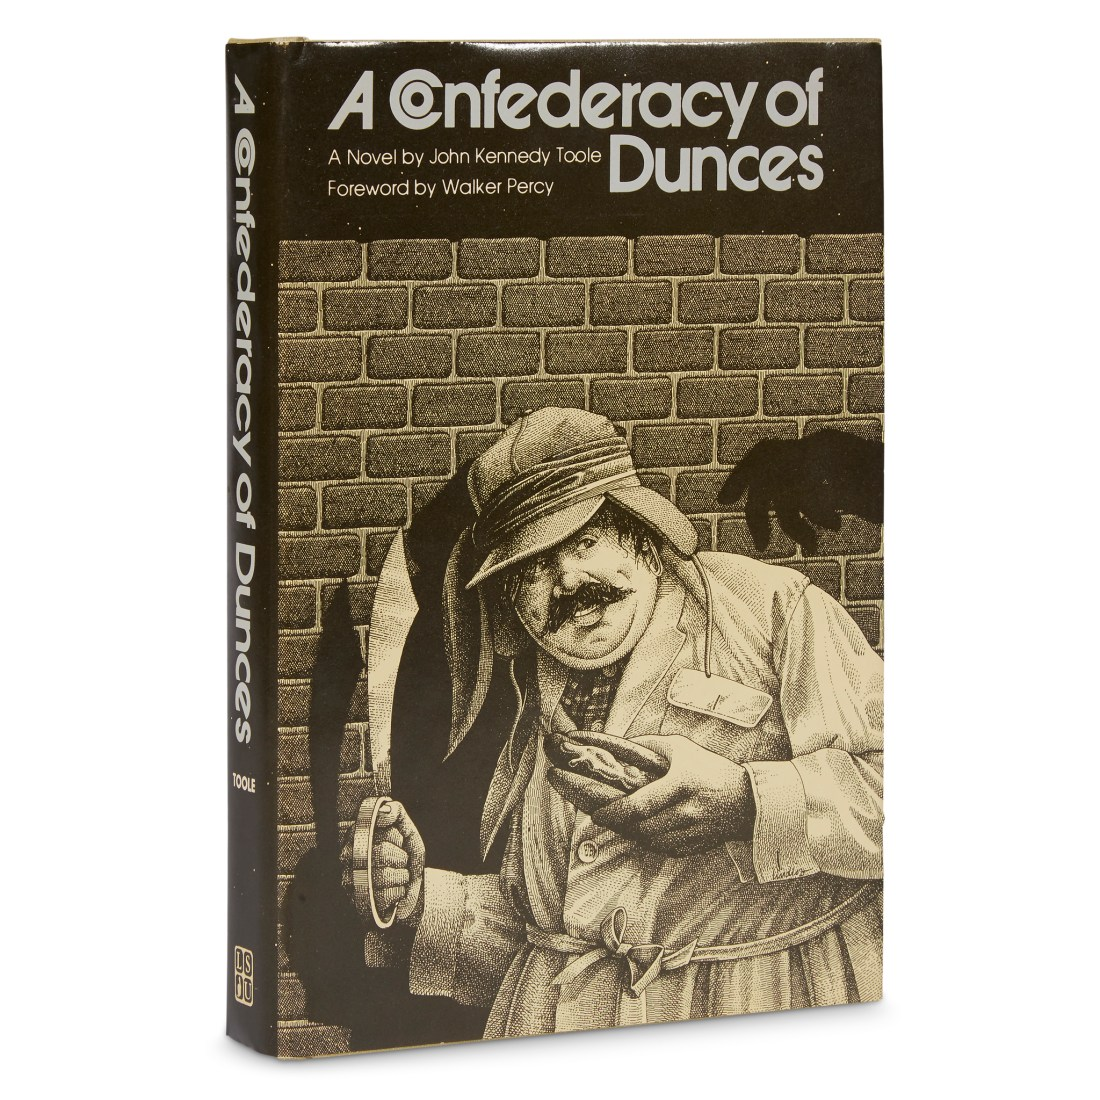 A 1980 first edition copy of A Confederacy of Dunces by John Kennedy Toole, in its dust jacket.